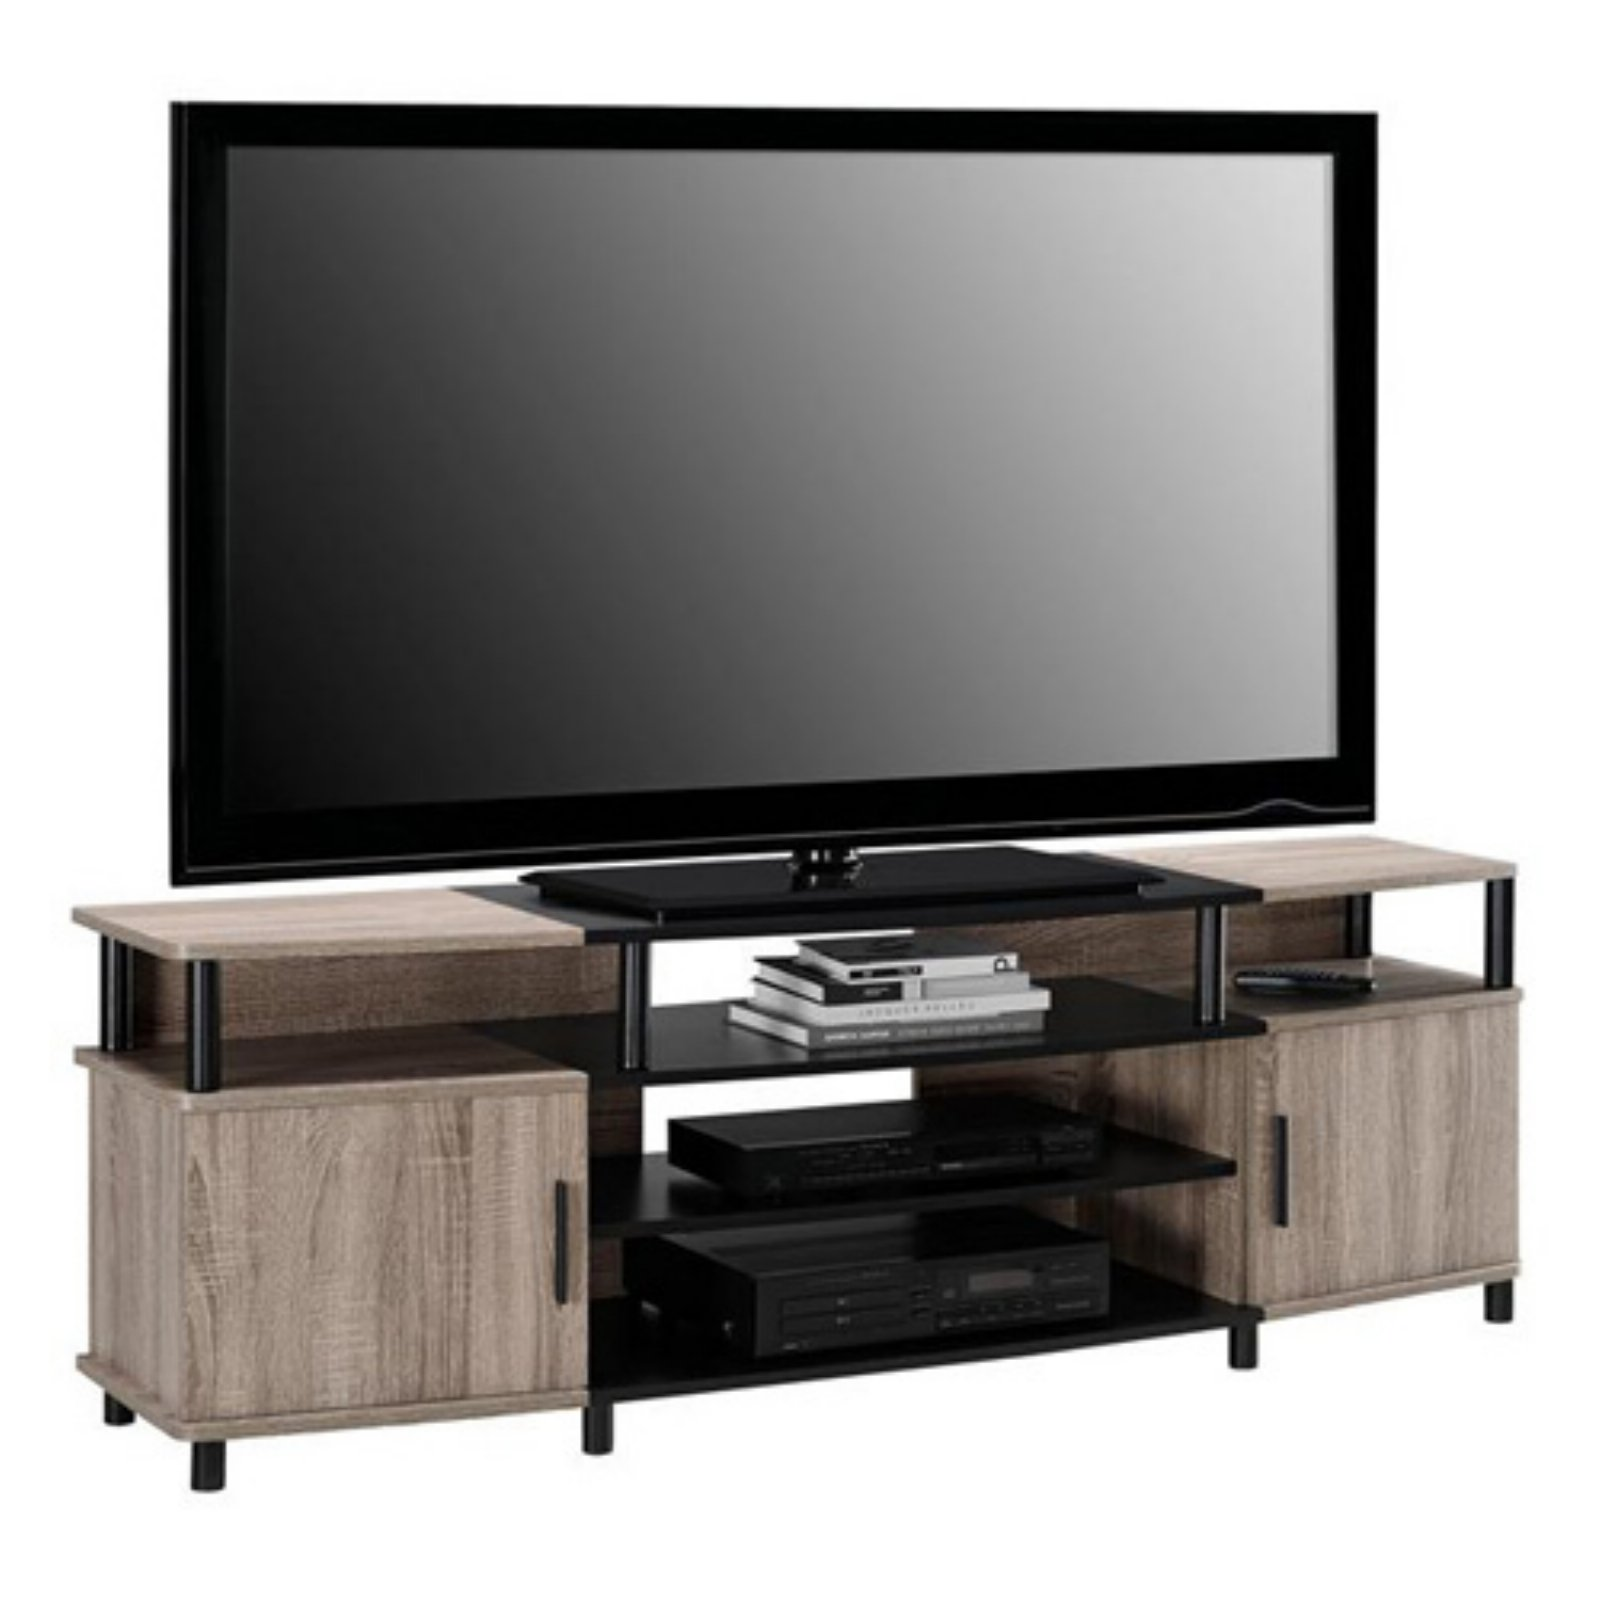 50 Inch Tv Stand Entertainment Unit 50in Max Tv Size Flat Screen